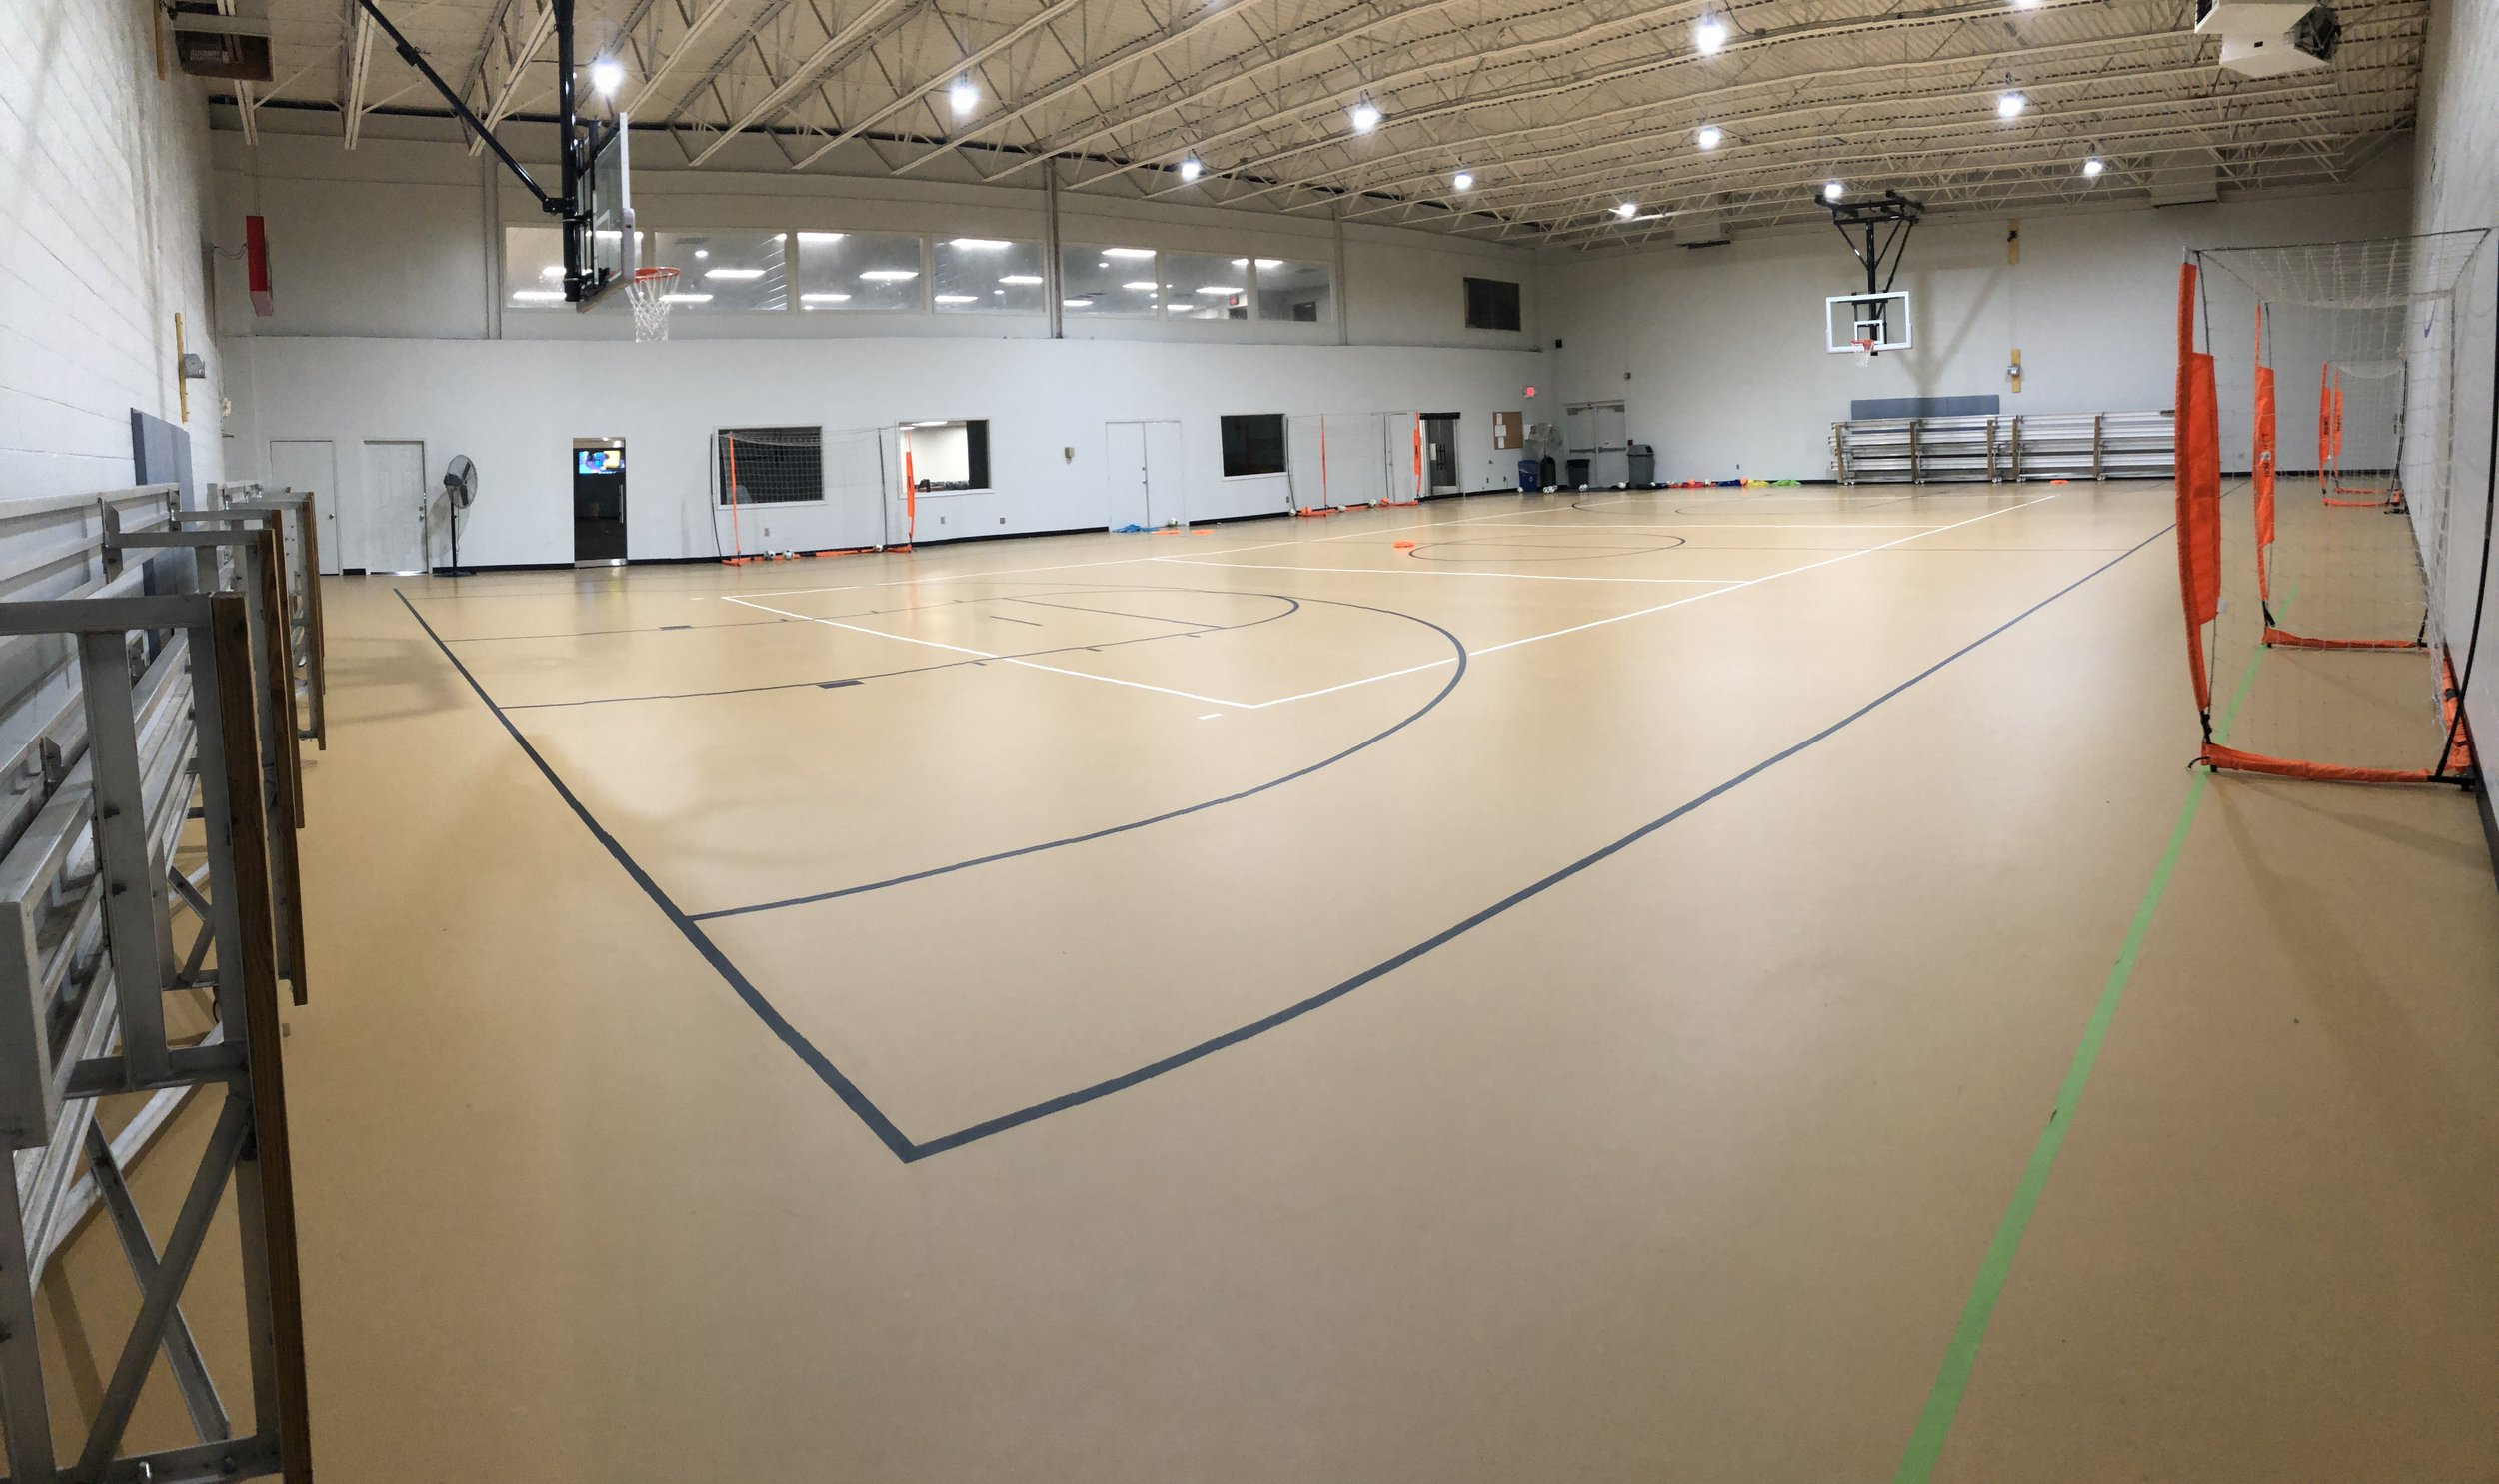 Charlotte Futsal Center of Excellence - 1200 S Caldwell St, Charlotte, NC 28203-Furnished lounge with recreational activities and TV-second floor viewing area-observation windows in lounge-wifi